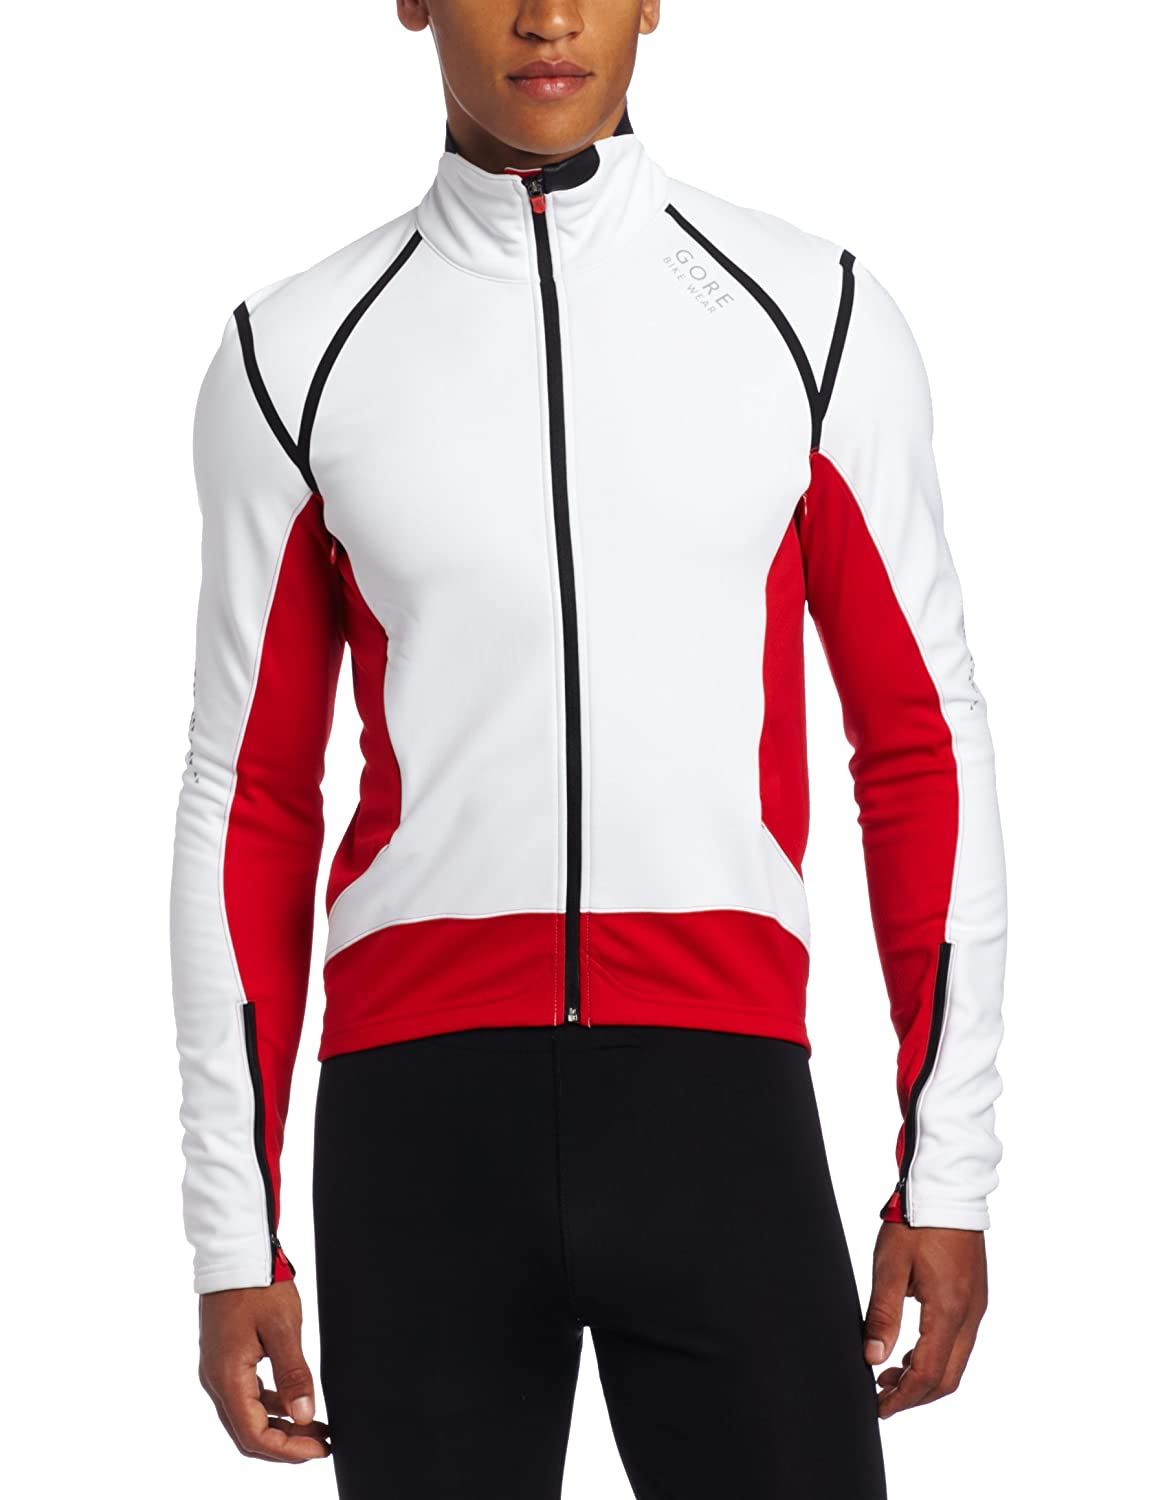 GORE BIKE WEAR Herren Jacke Xenon 2.0 Soft Shell